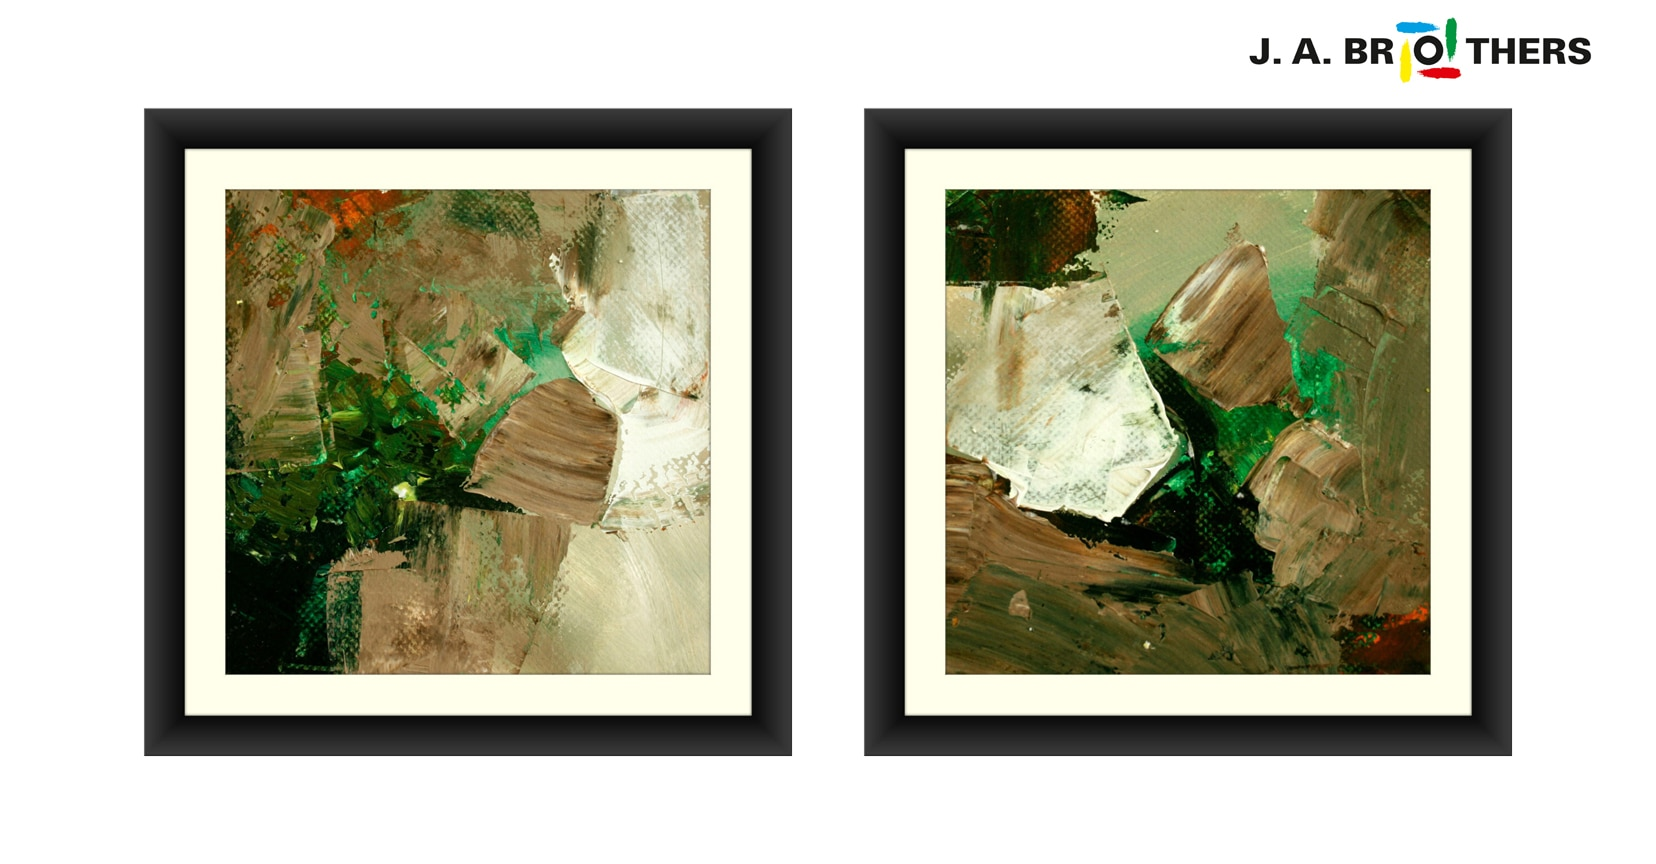 ABSTRACT ART 2522205 & 2522206 PRINT ON CANVAS EACH SIZE: 18